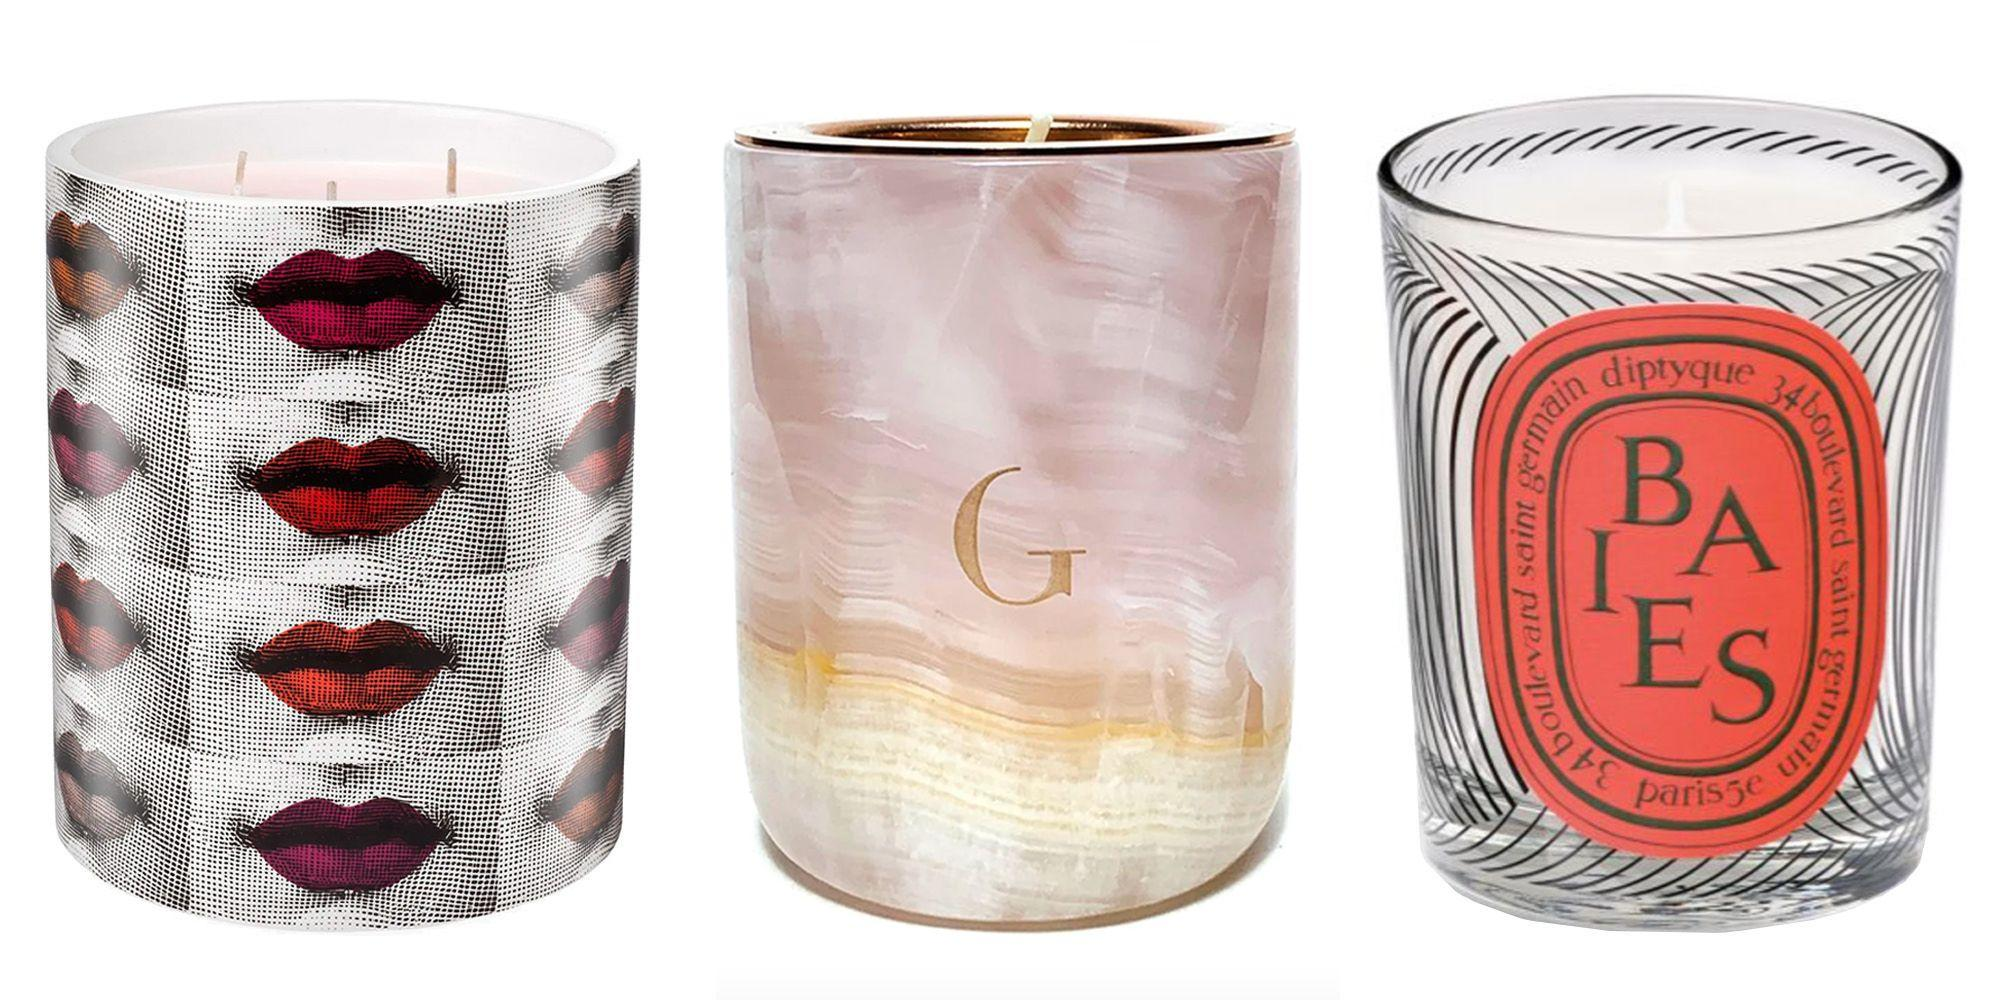 The Scented Candles We Re Loving For Spring